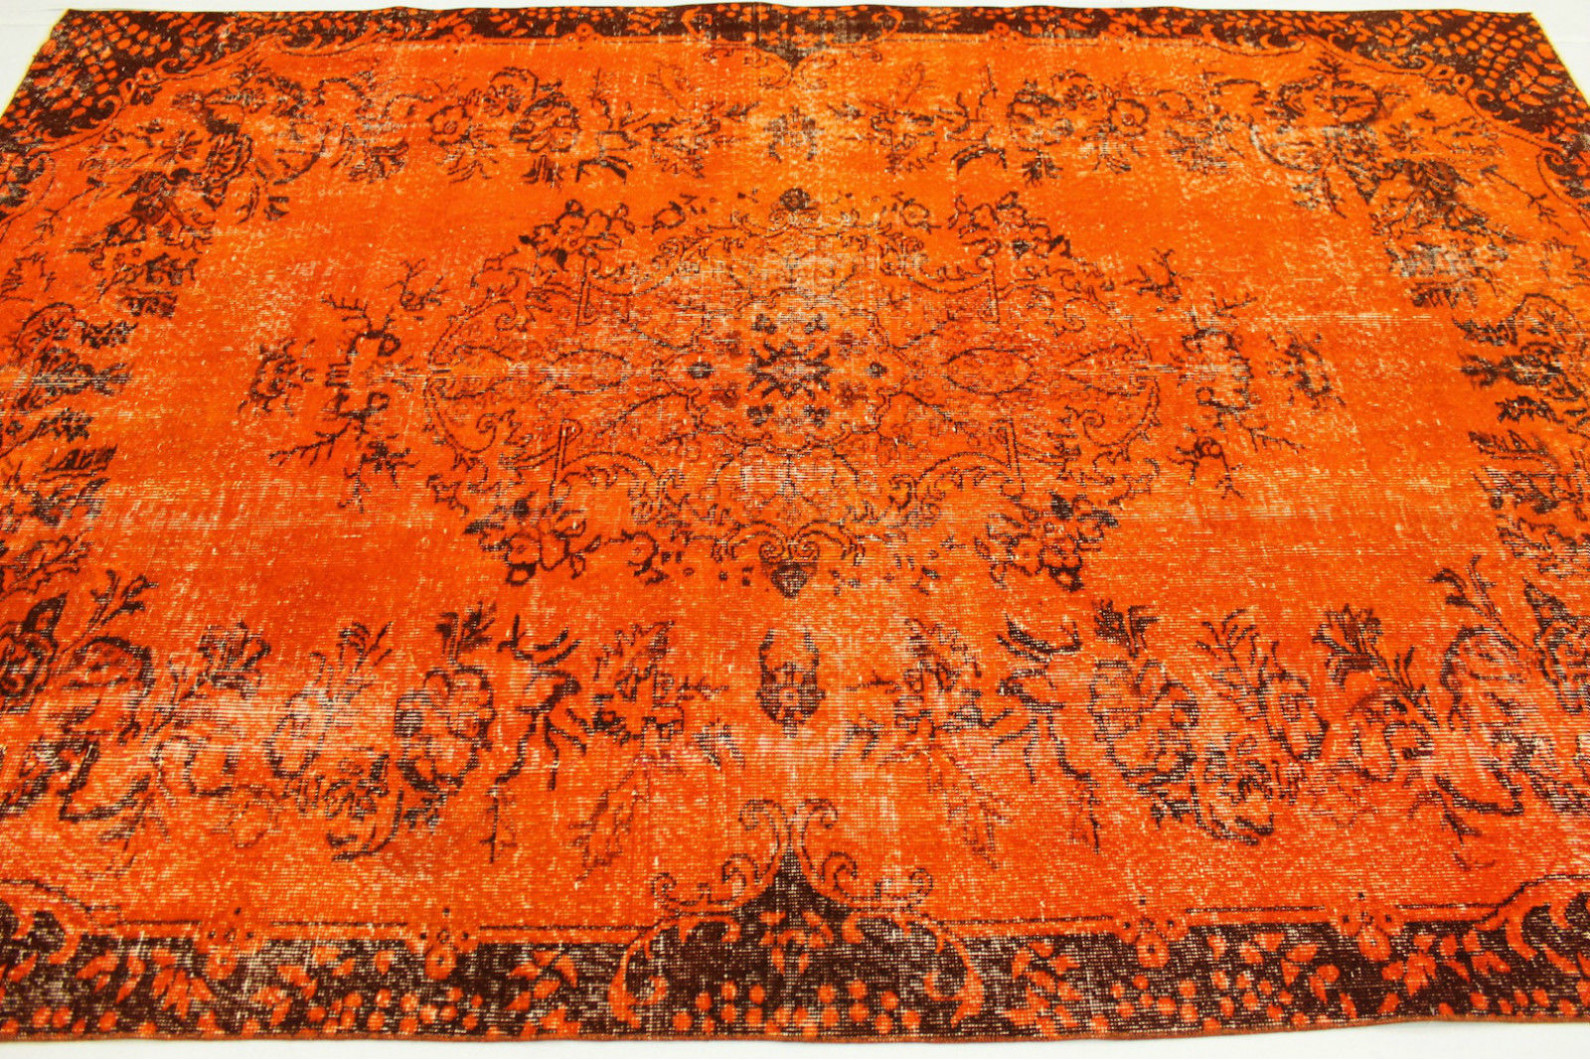 Teppich orange  Vintage Teppich Orange in 290x190cm (1011-30) bei carpetido.de kaufen